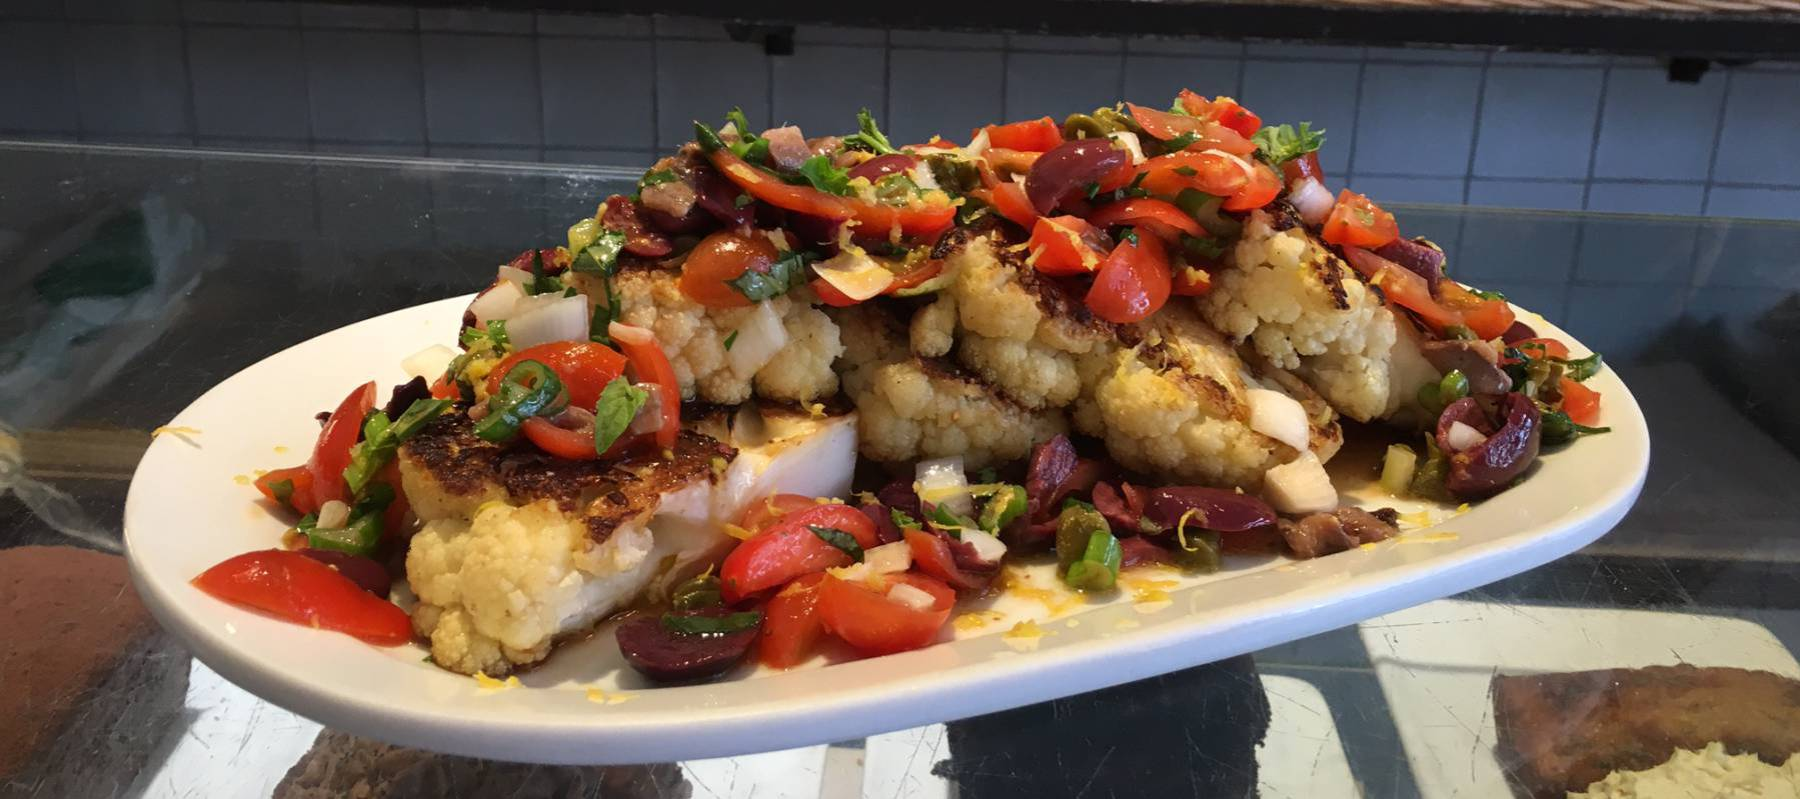 Filetes de coliflor con salsa italiana